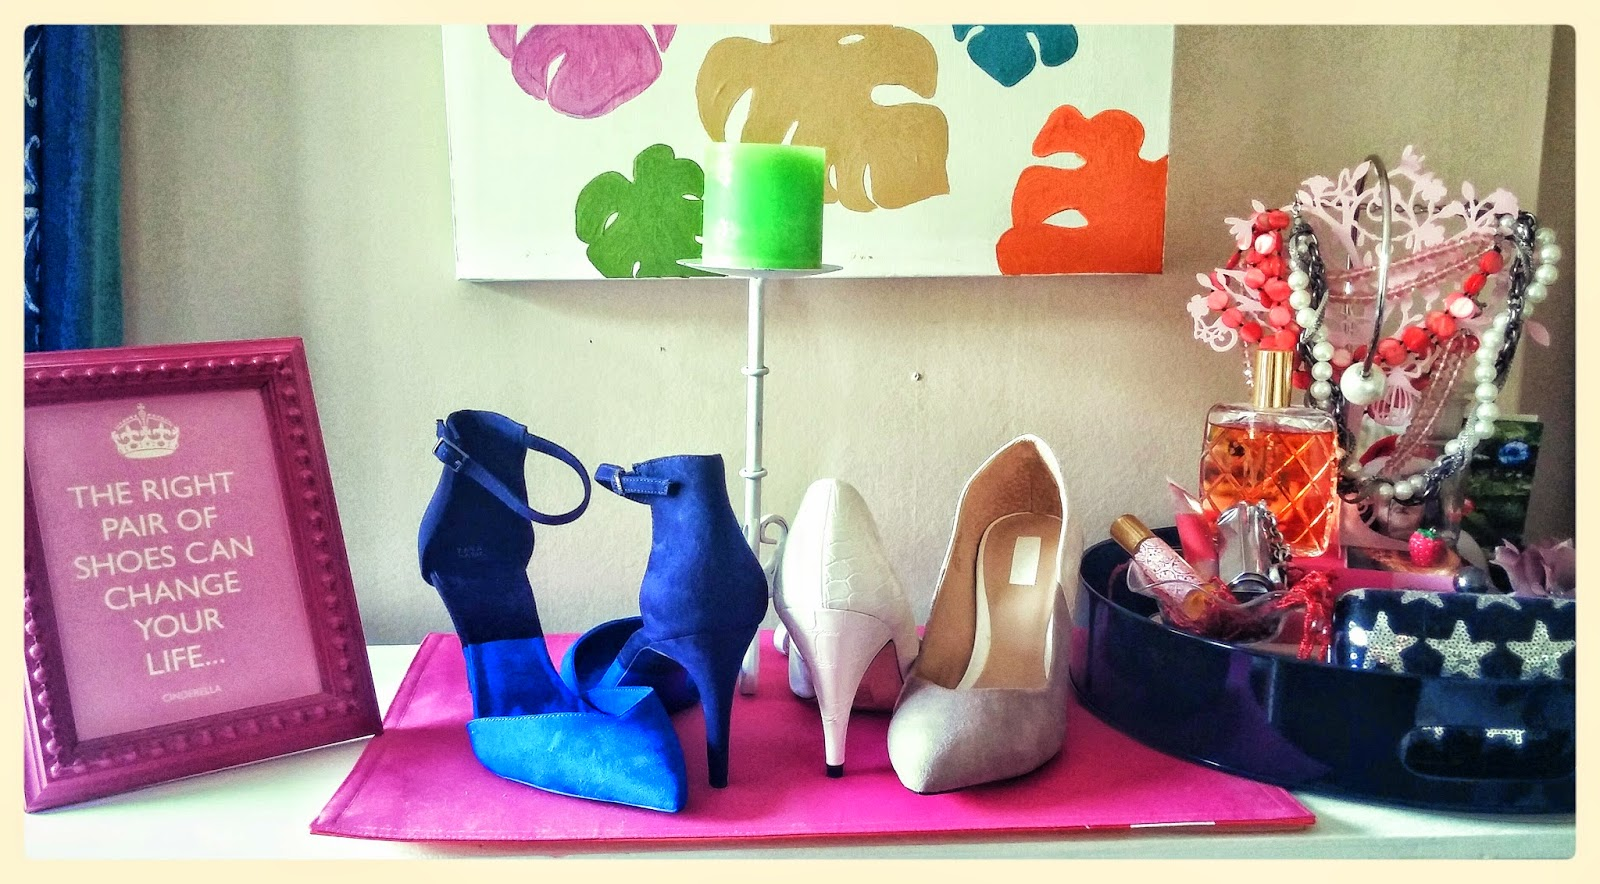 The Shoe-gallery